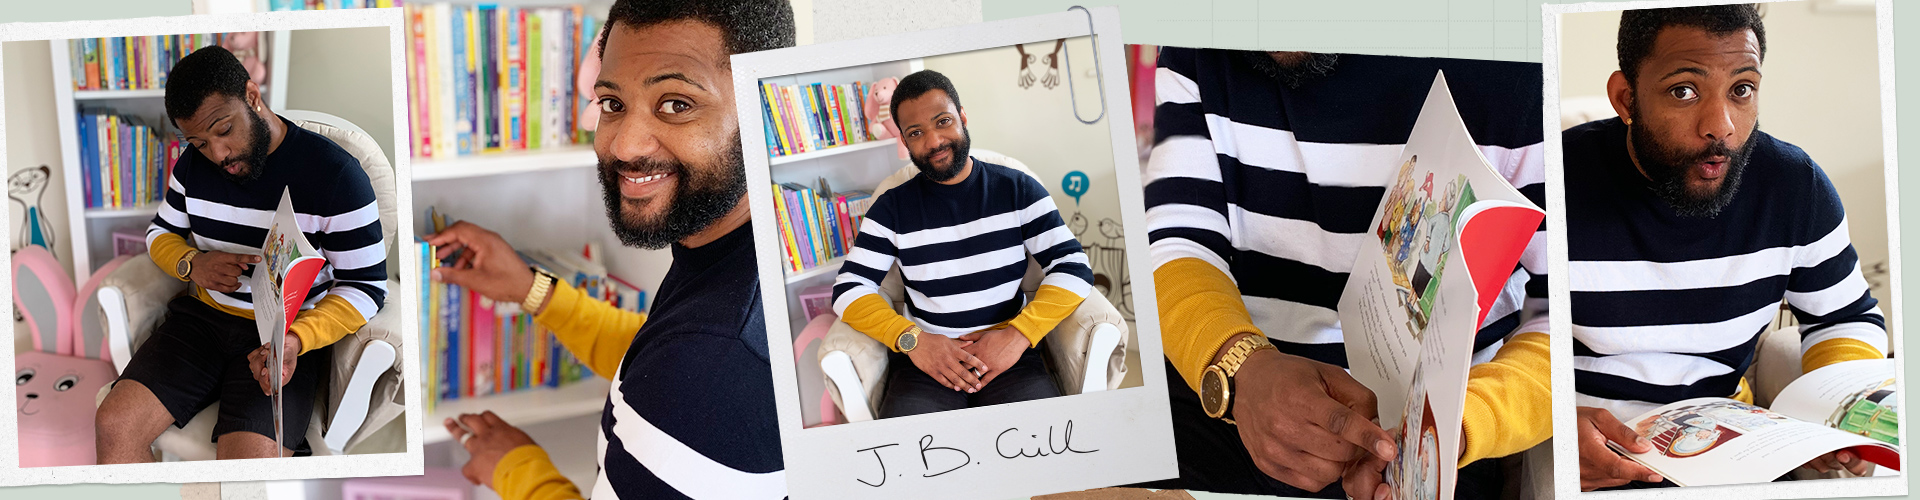 Telling a Good Story with JB Gill